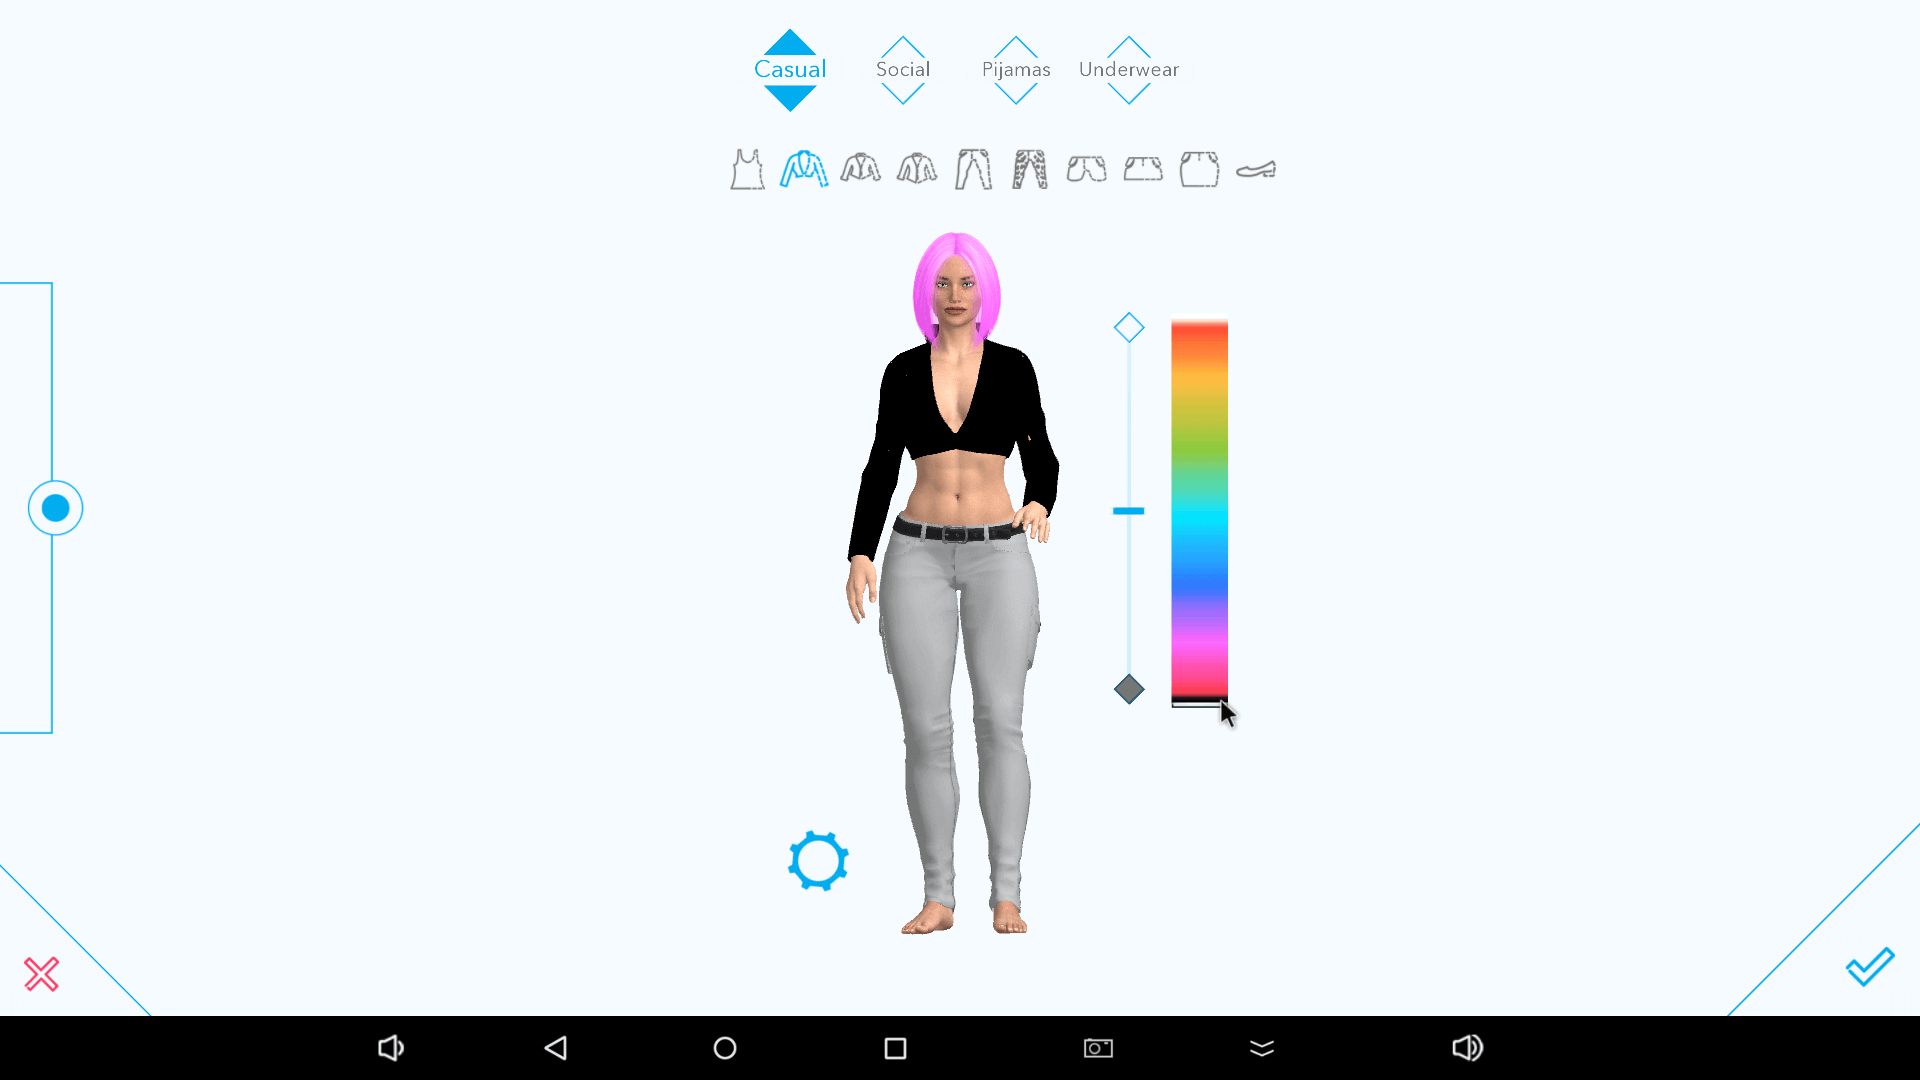 Picking clothing on the Harmony AI app.